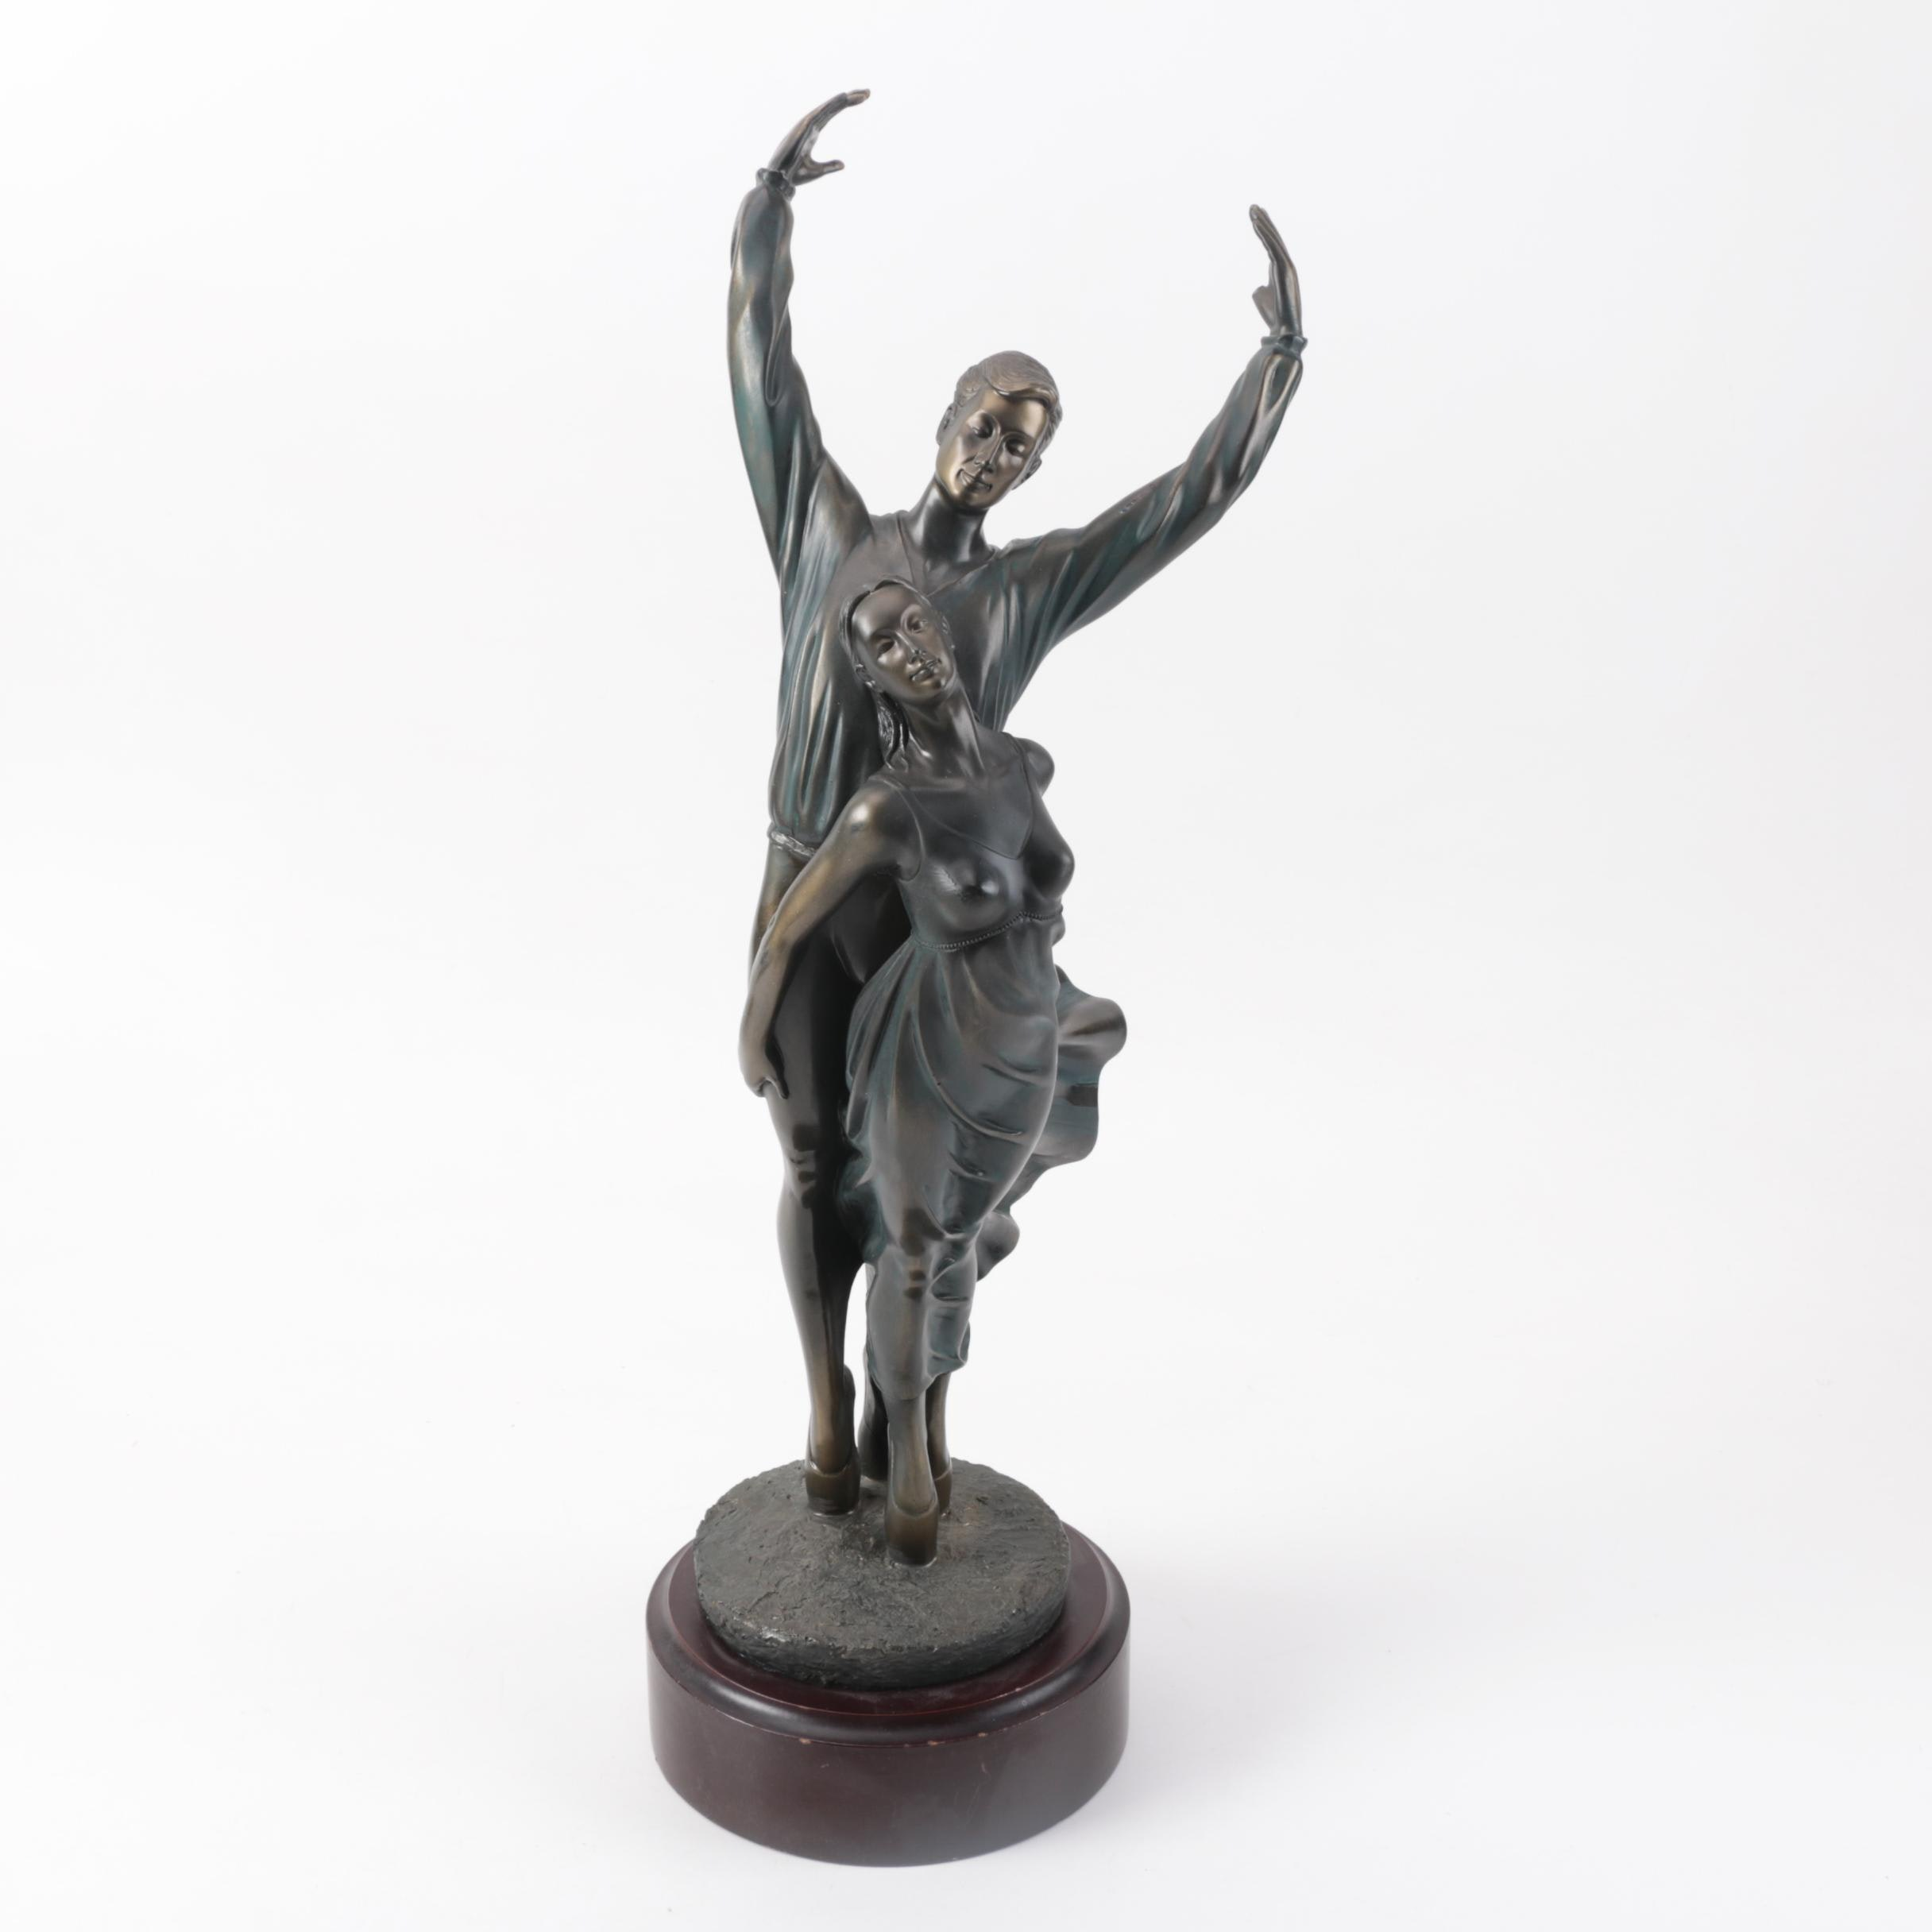 Bronze-Tone Reproduction Sculpture of Ballet Dancers